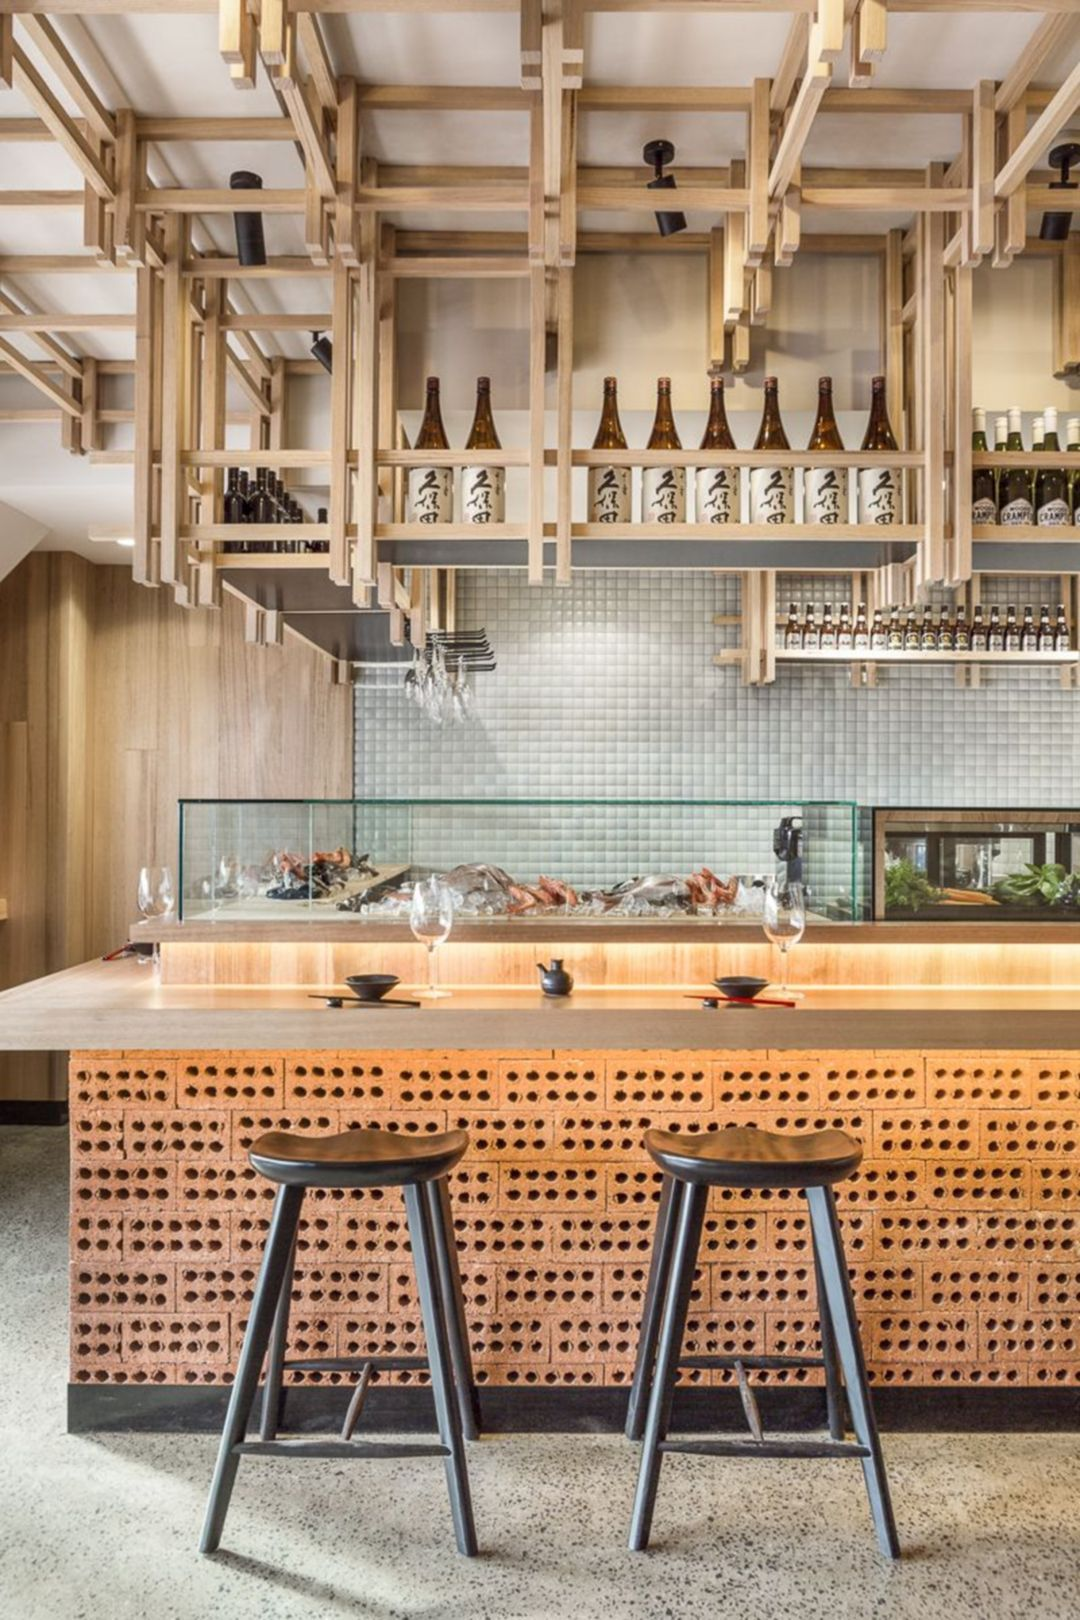 Bar Design And Decor Ideas That Can You Try